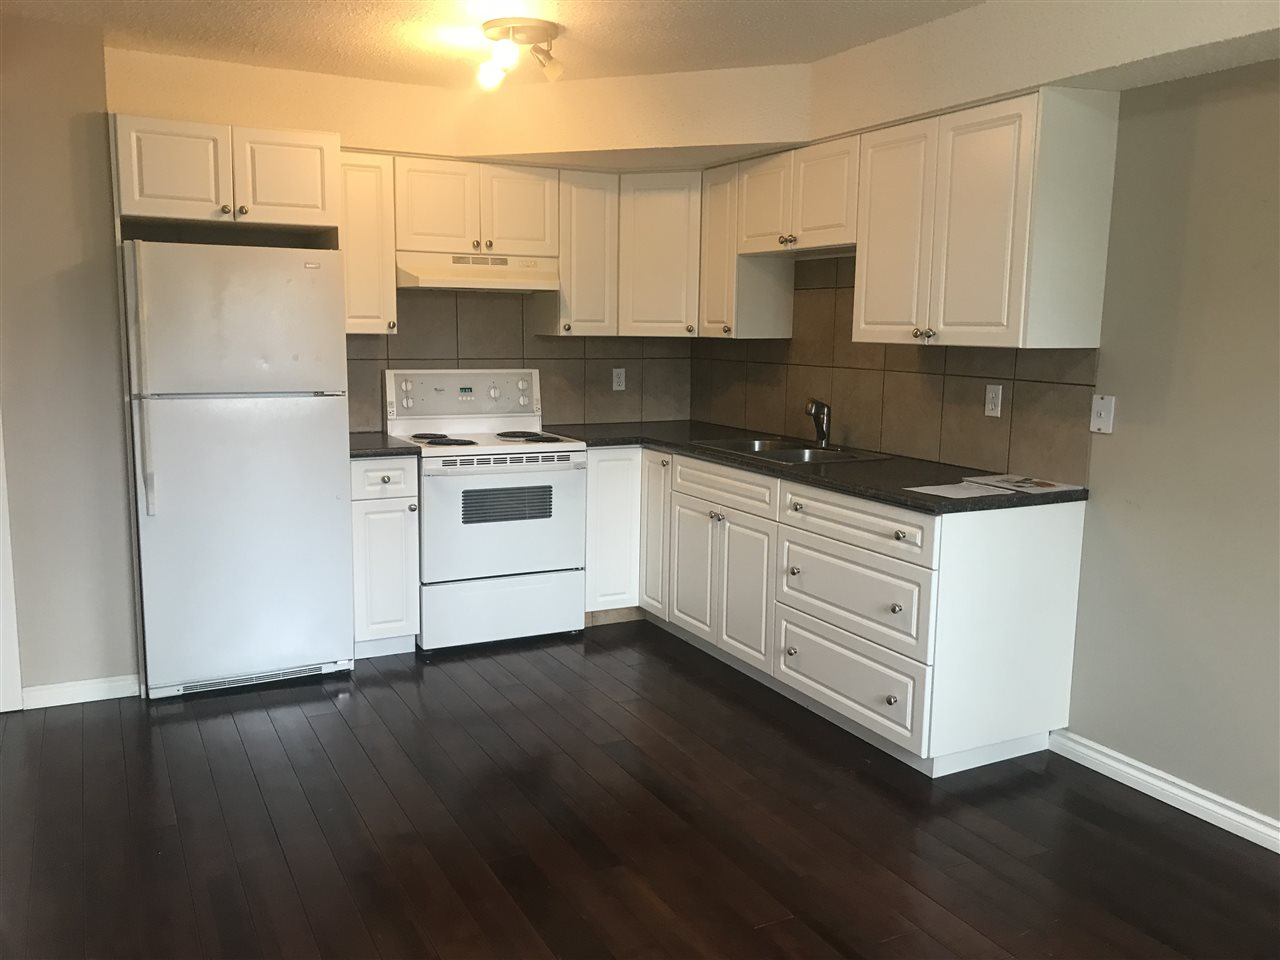 Welcome to Bannerman Village! This upgraded 3 bedroom, END UNIT townhouse features a NEWER KITCHEN and backsplash, HARDWOOD FLOORS throughout the main floor and a renovated 4 piece bathroom. A fenced backyard, and tons of natural light throughout finish the property off right.